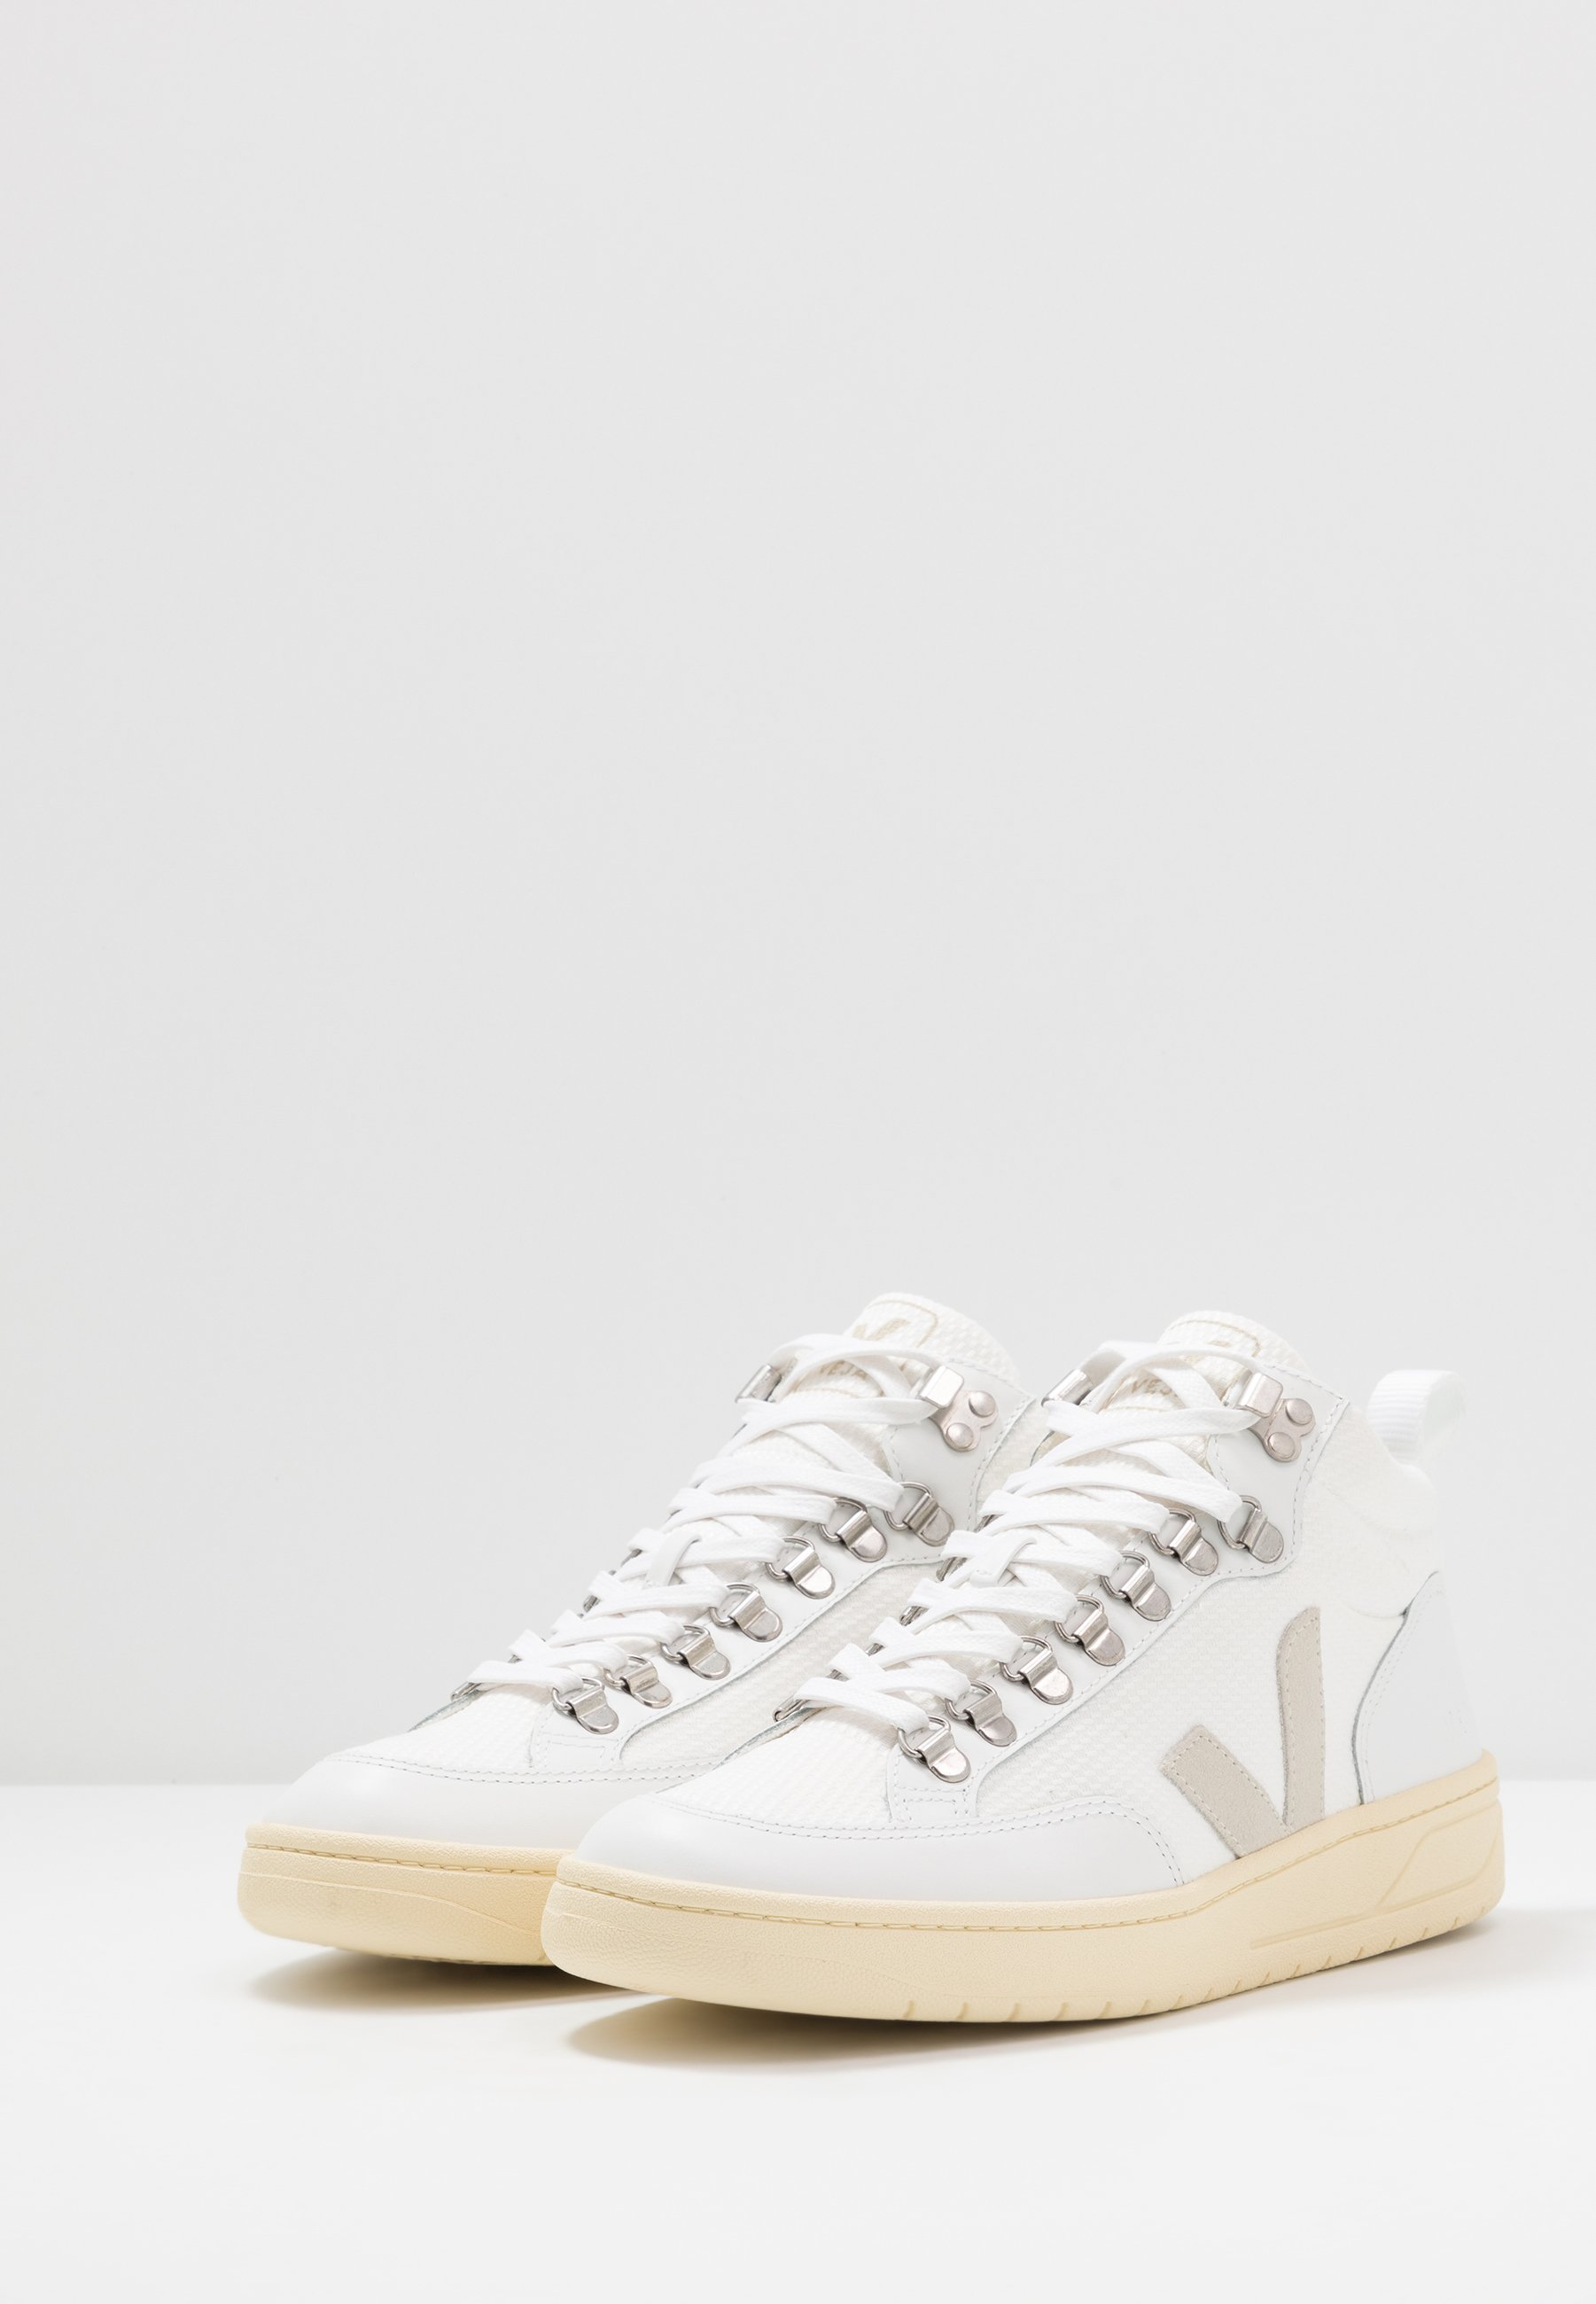 Veja Roraima - Sneaker High White Natural Black Friday